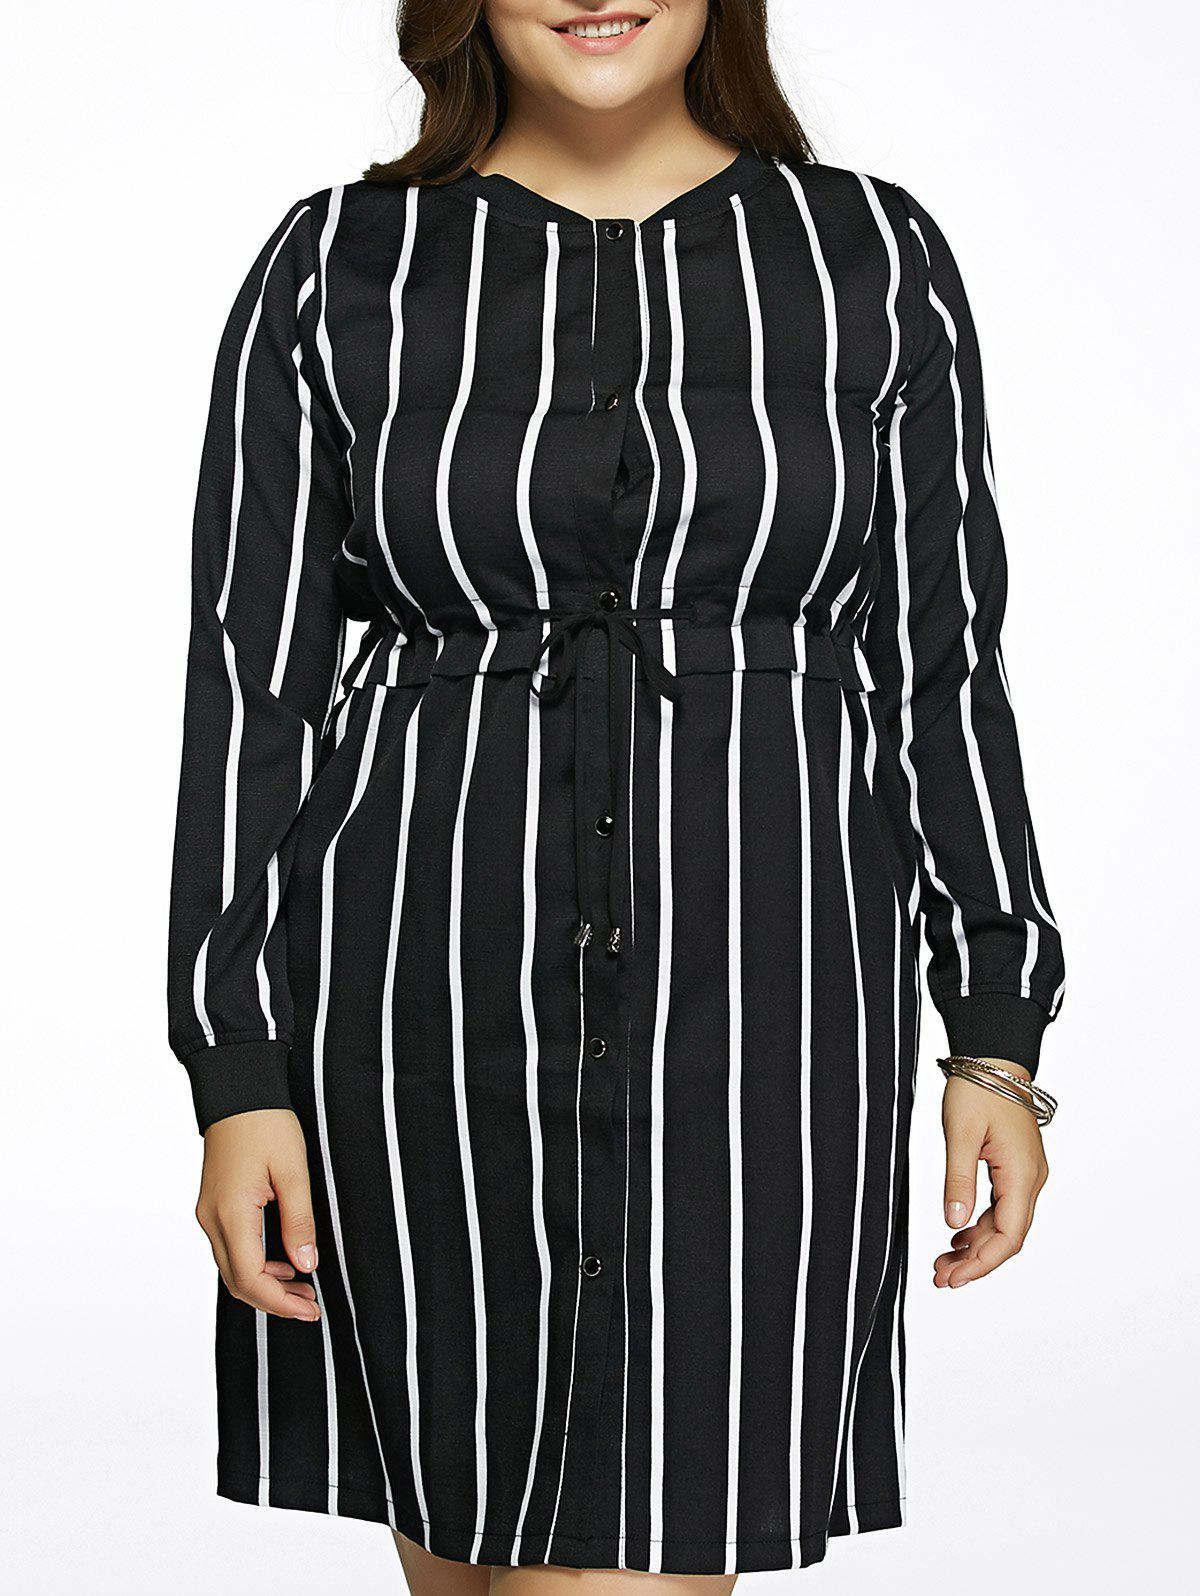 Oversized Chic Long Sleeve Drawstring Striped Dress